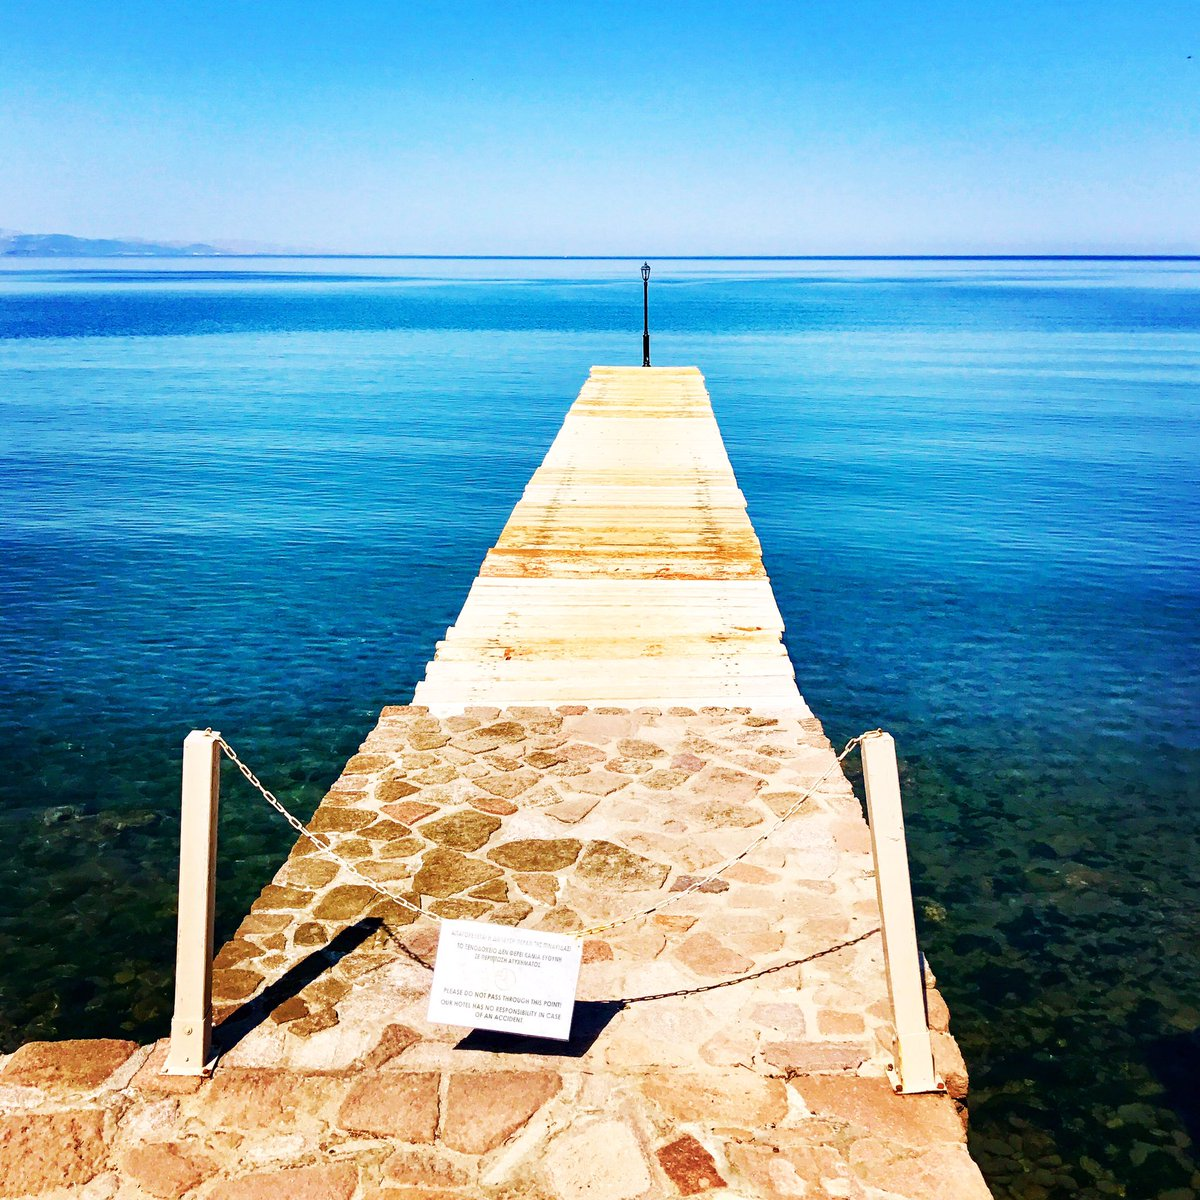 The road to the great blue nowhere #blue #roadtonowhere #Greece #Molyv...